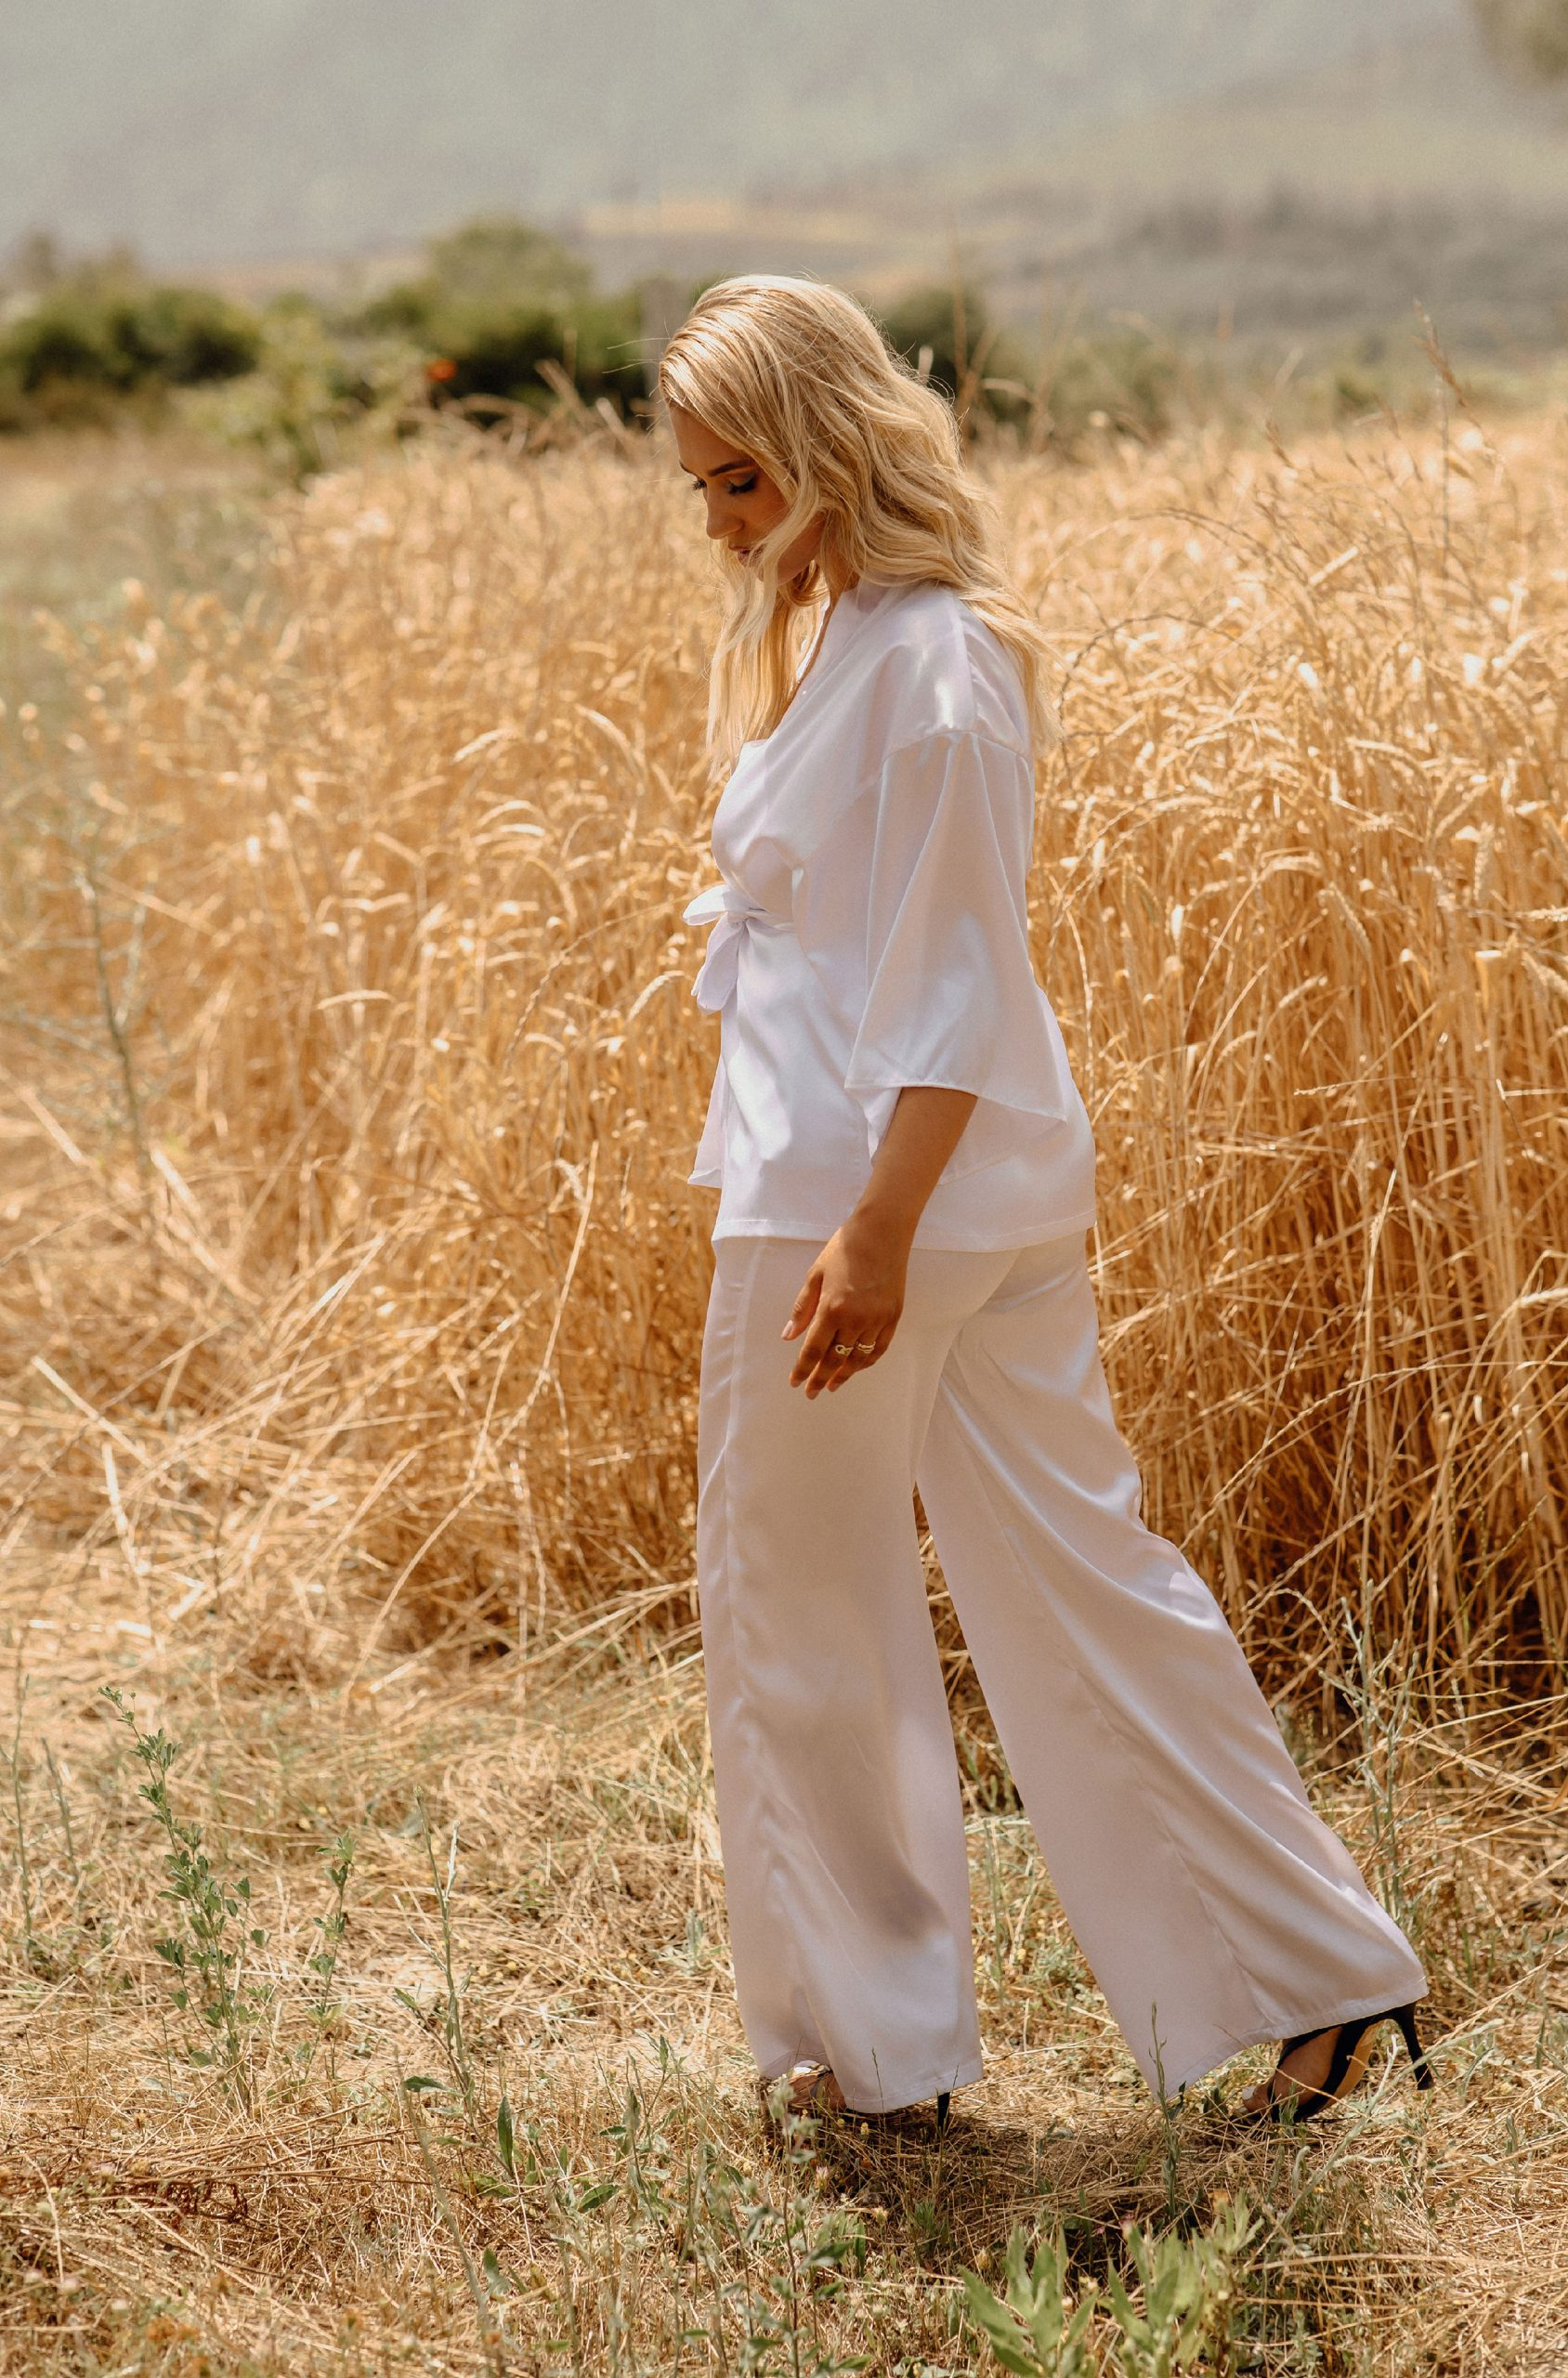 Wearing a white two pieces in a Wheatfield